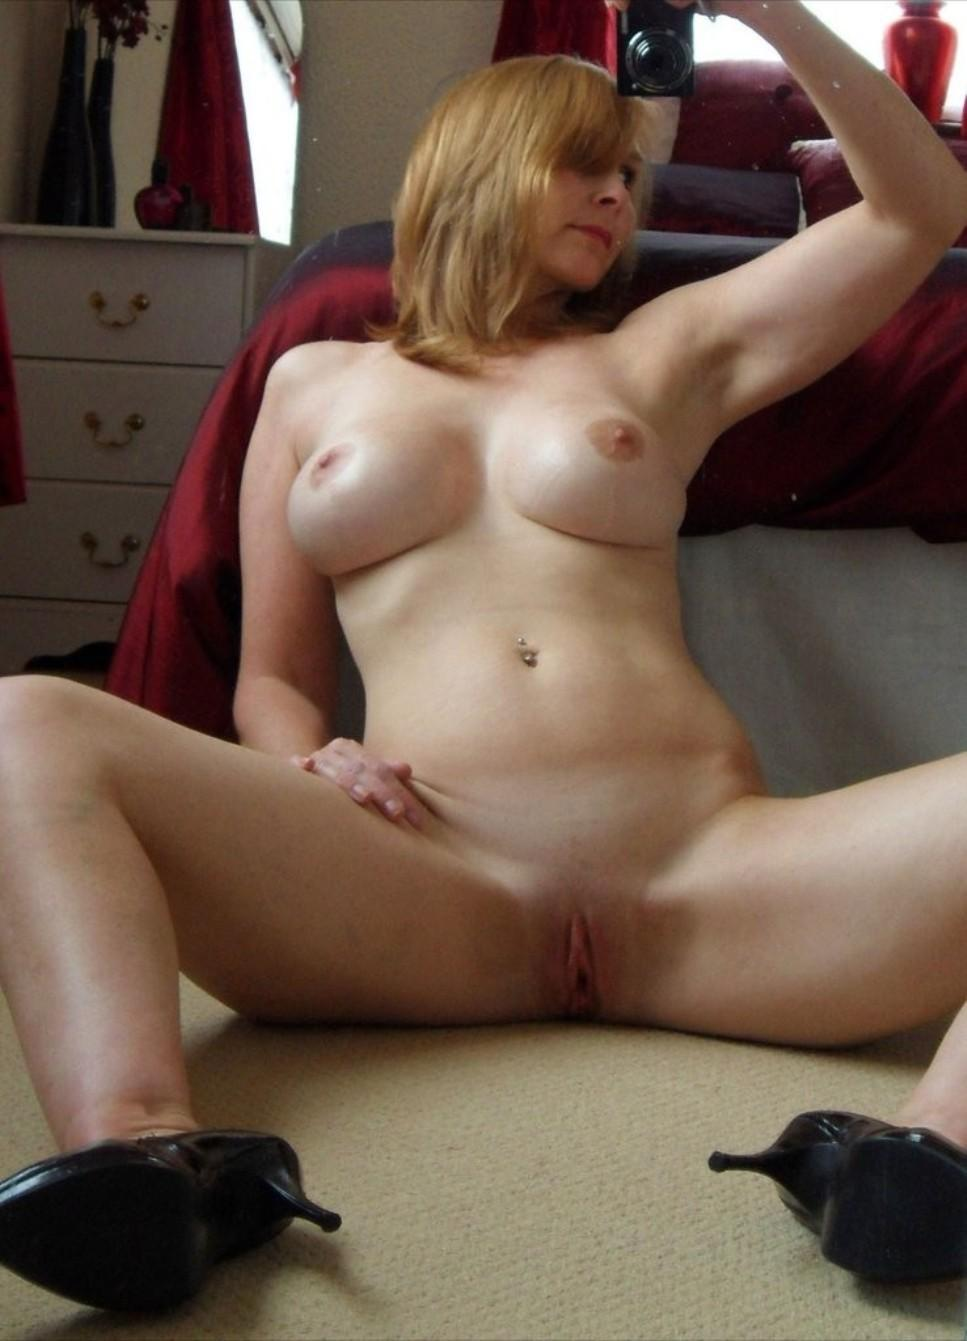 sex starved amature mature gets her squirt on mobile